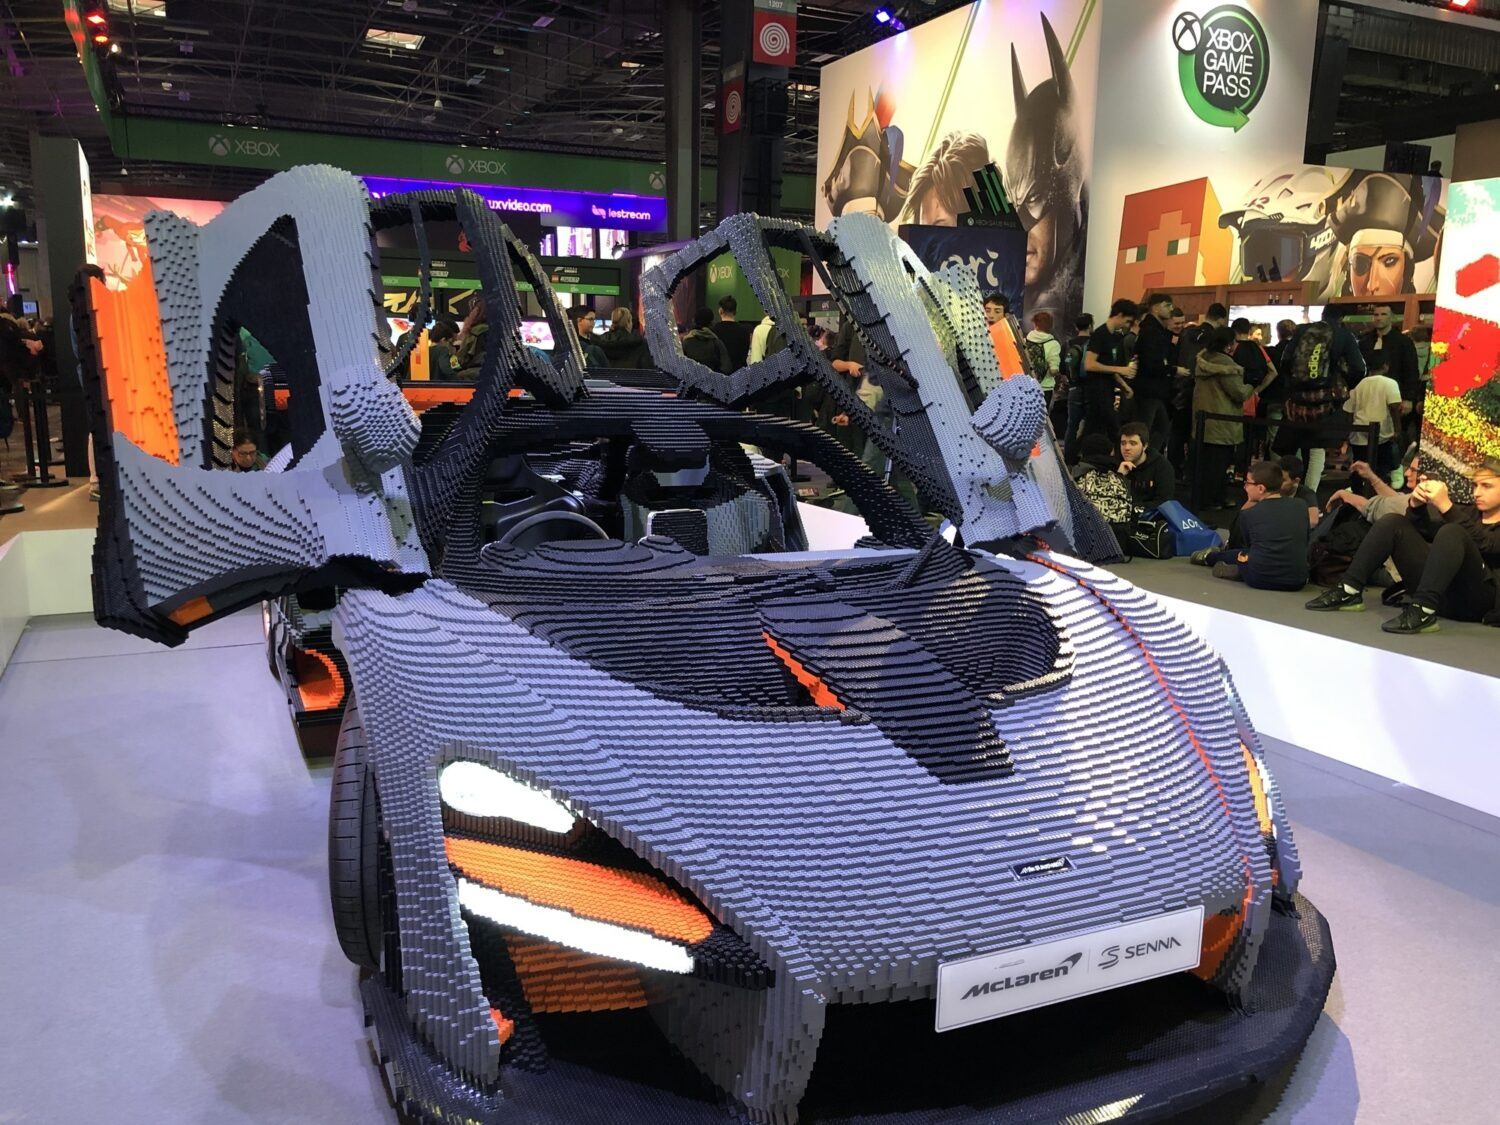 mclaren Lego Paris Games Week